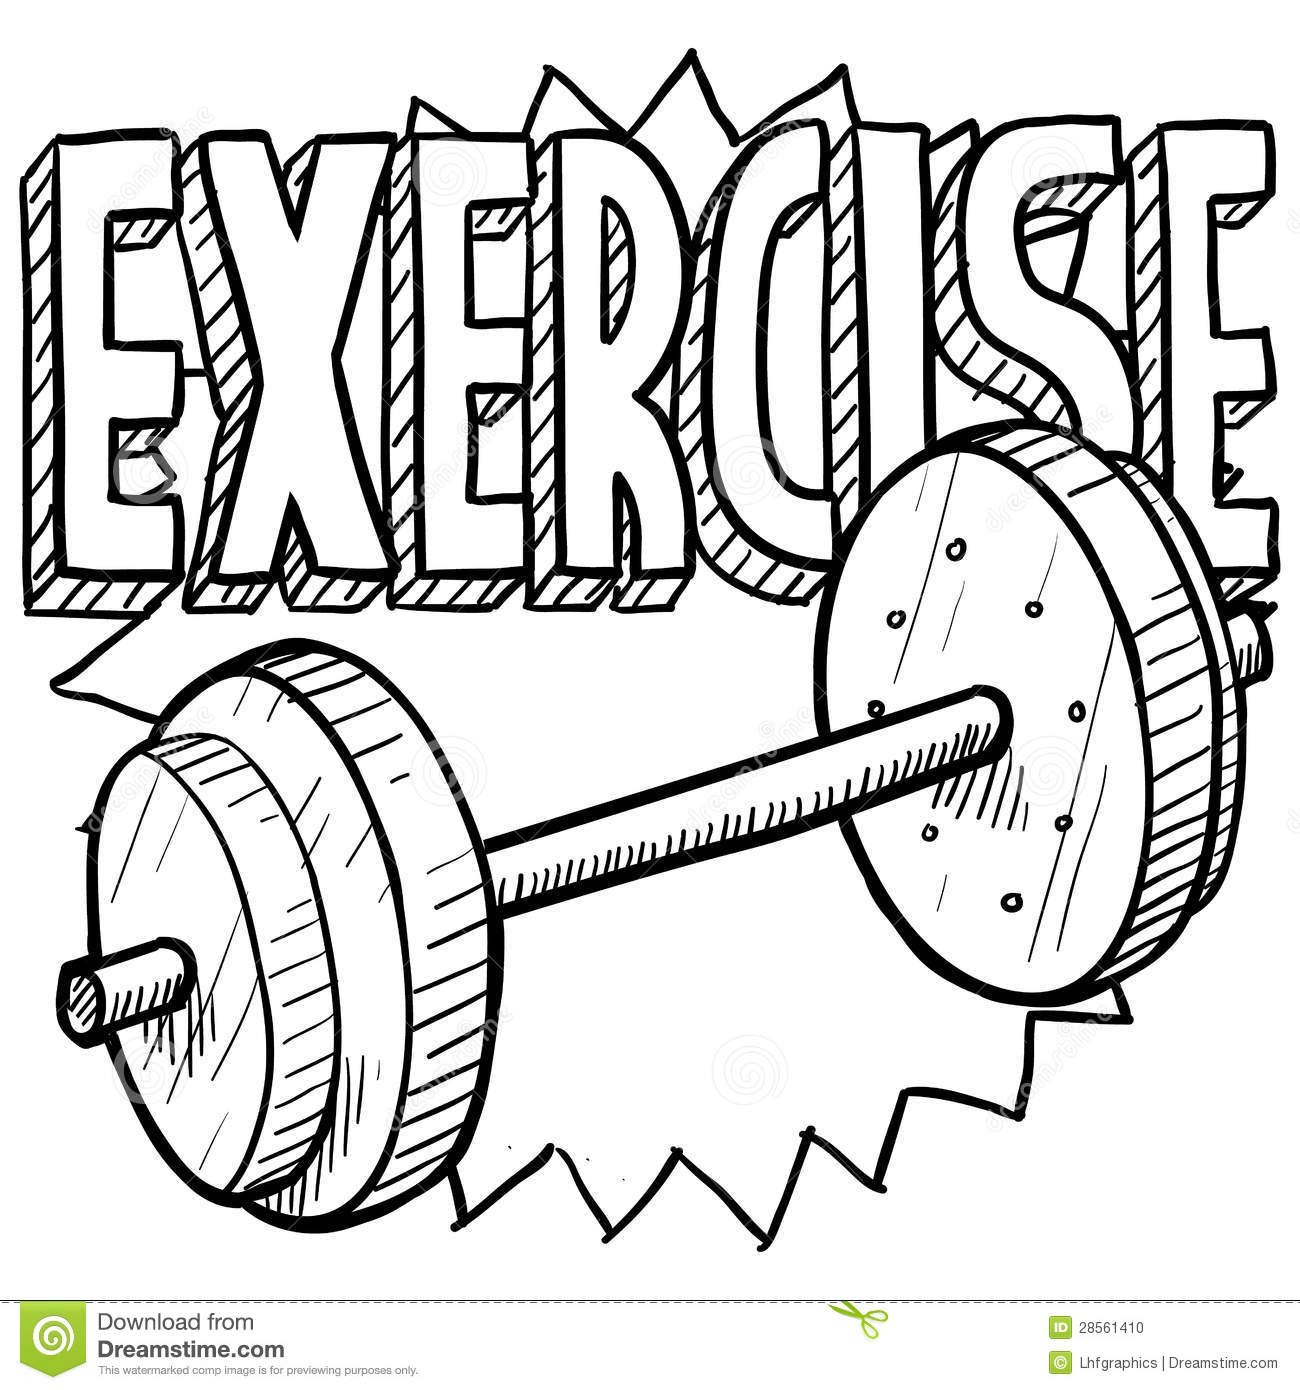 Weightlifting Sketch Stock Vector Illustration Of Muscles